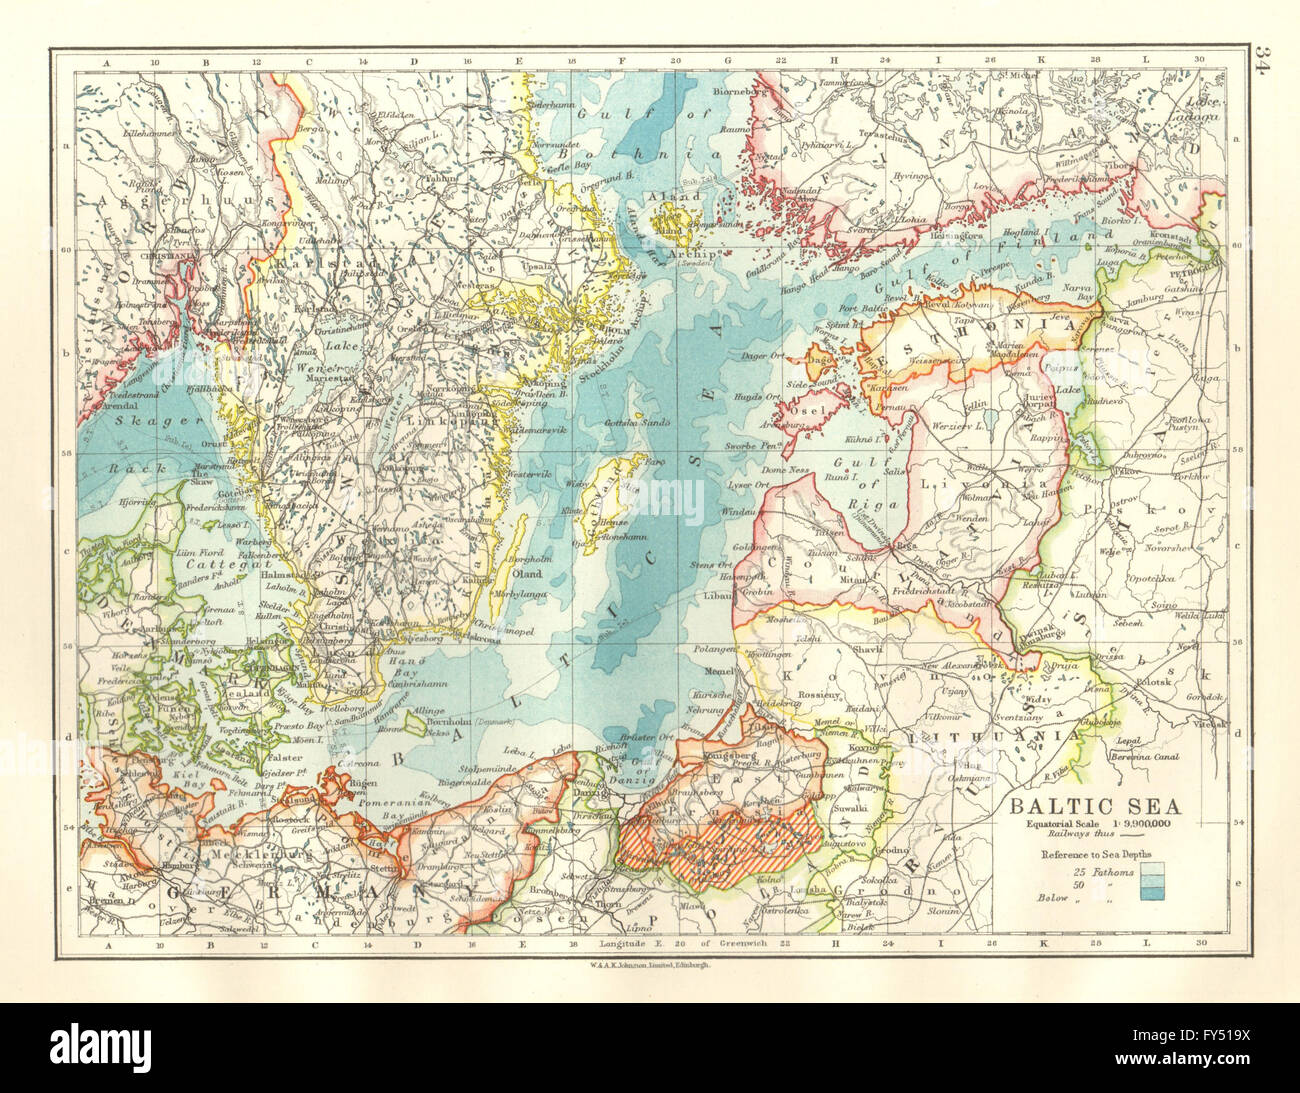 Baltic sea newly created states post ww1east prussia plebiscite baltic sea newly created states post ww1east prussia plebiscite area 1920 map sciox Image collections